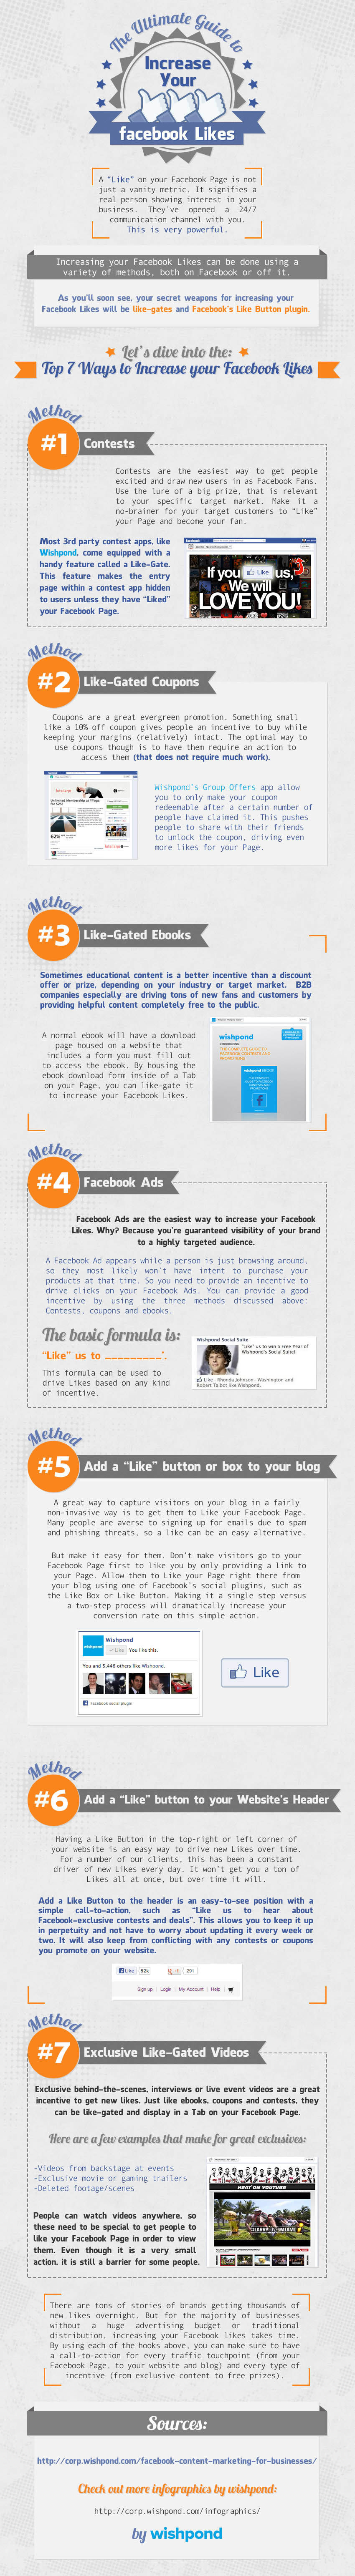 7 super easy ways to increase your Facebook likes - infographic